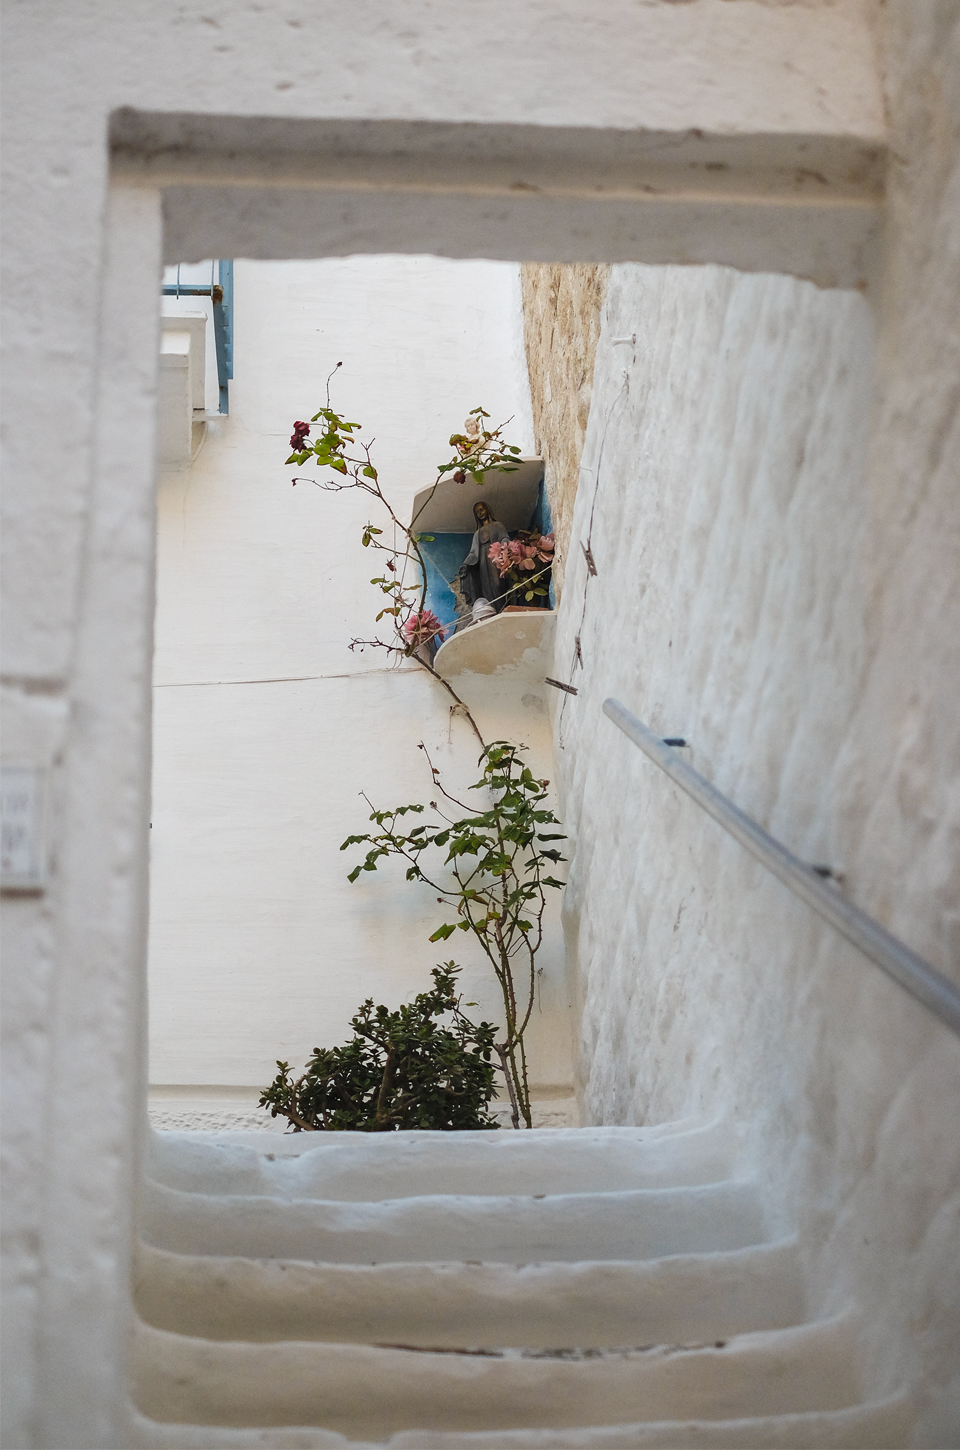 A glimpse of Puglia, secret passage in Polignano